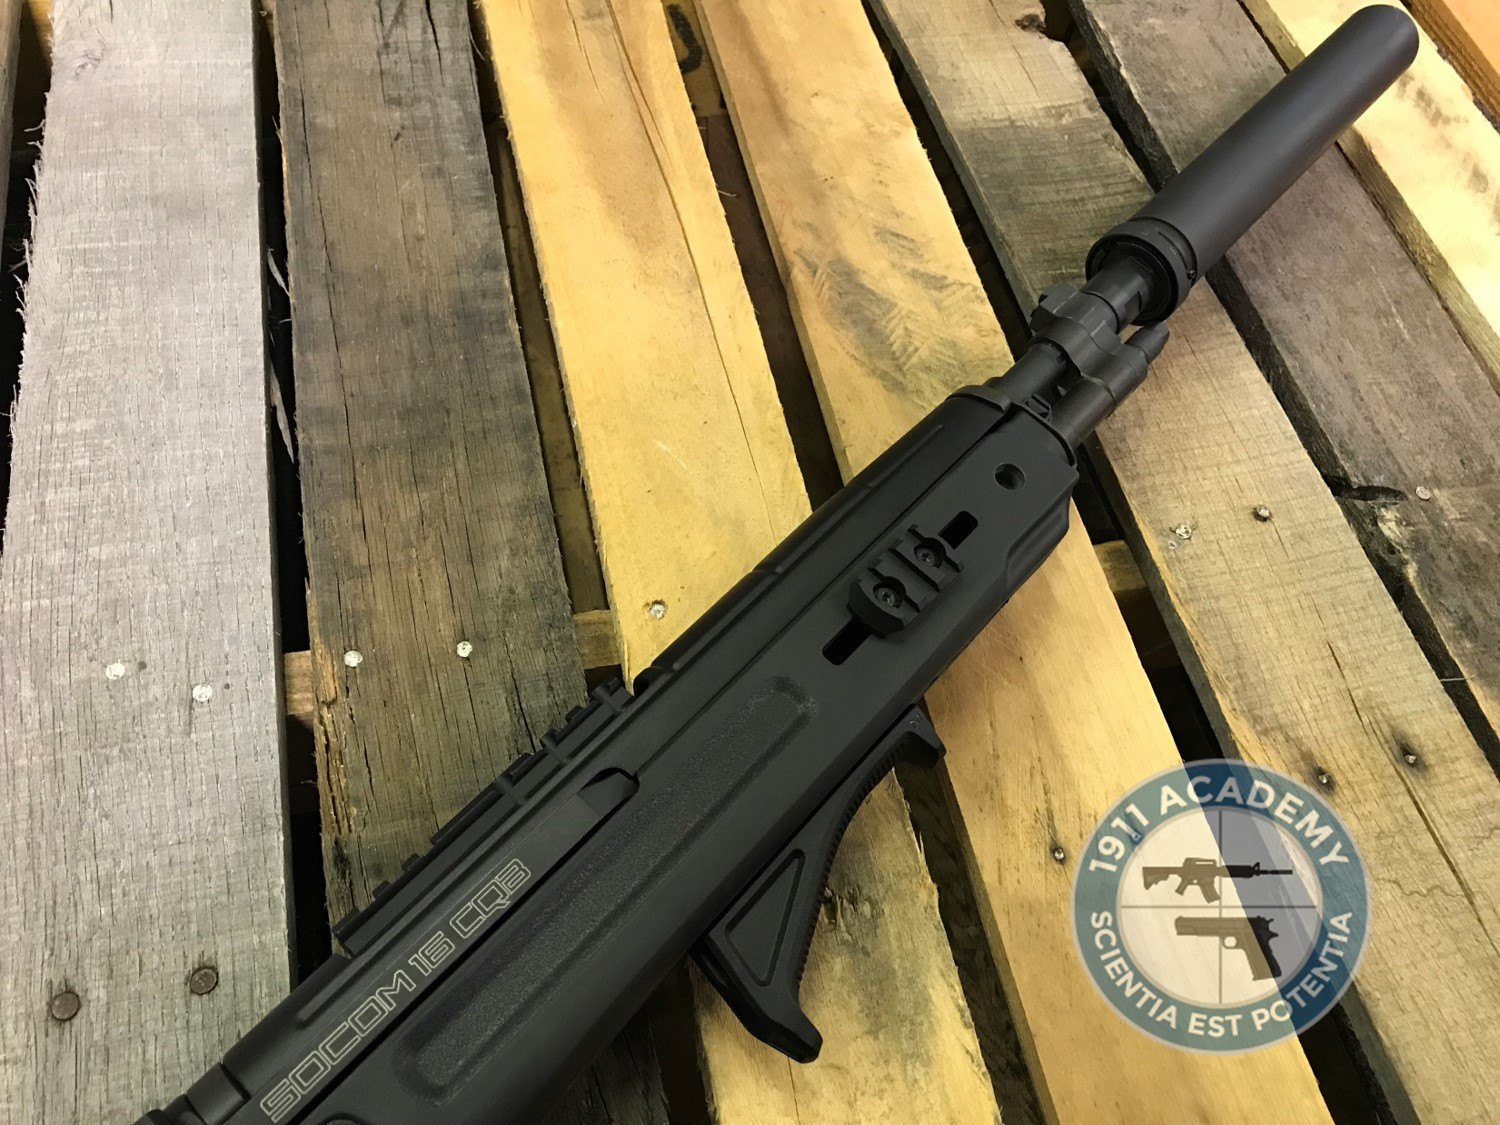 socom 16 suppressed